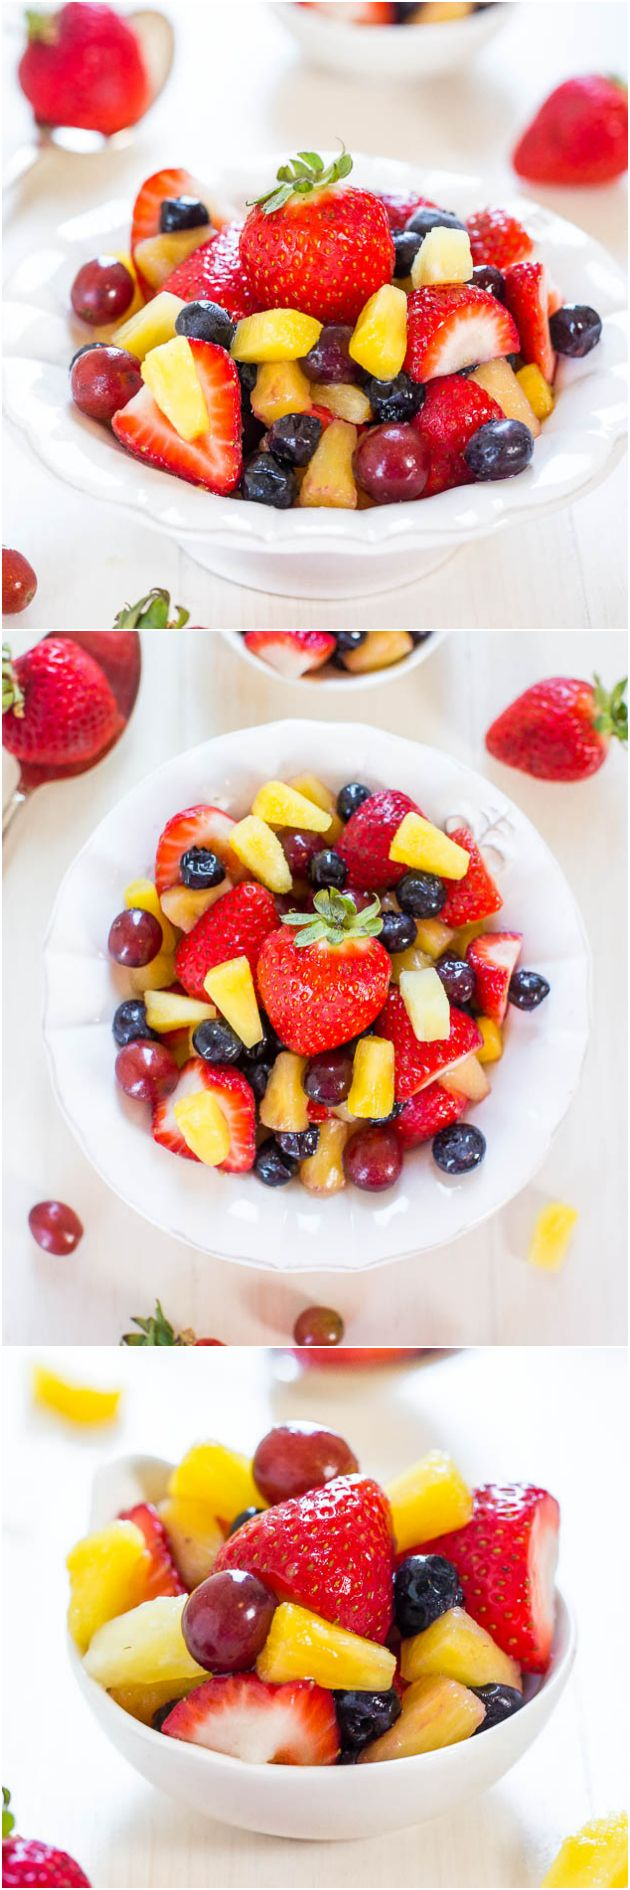 Vanilla Fruit Salad by averiecooks #Salad #Fruit #Vanilla #Healthy #Light